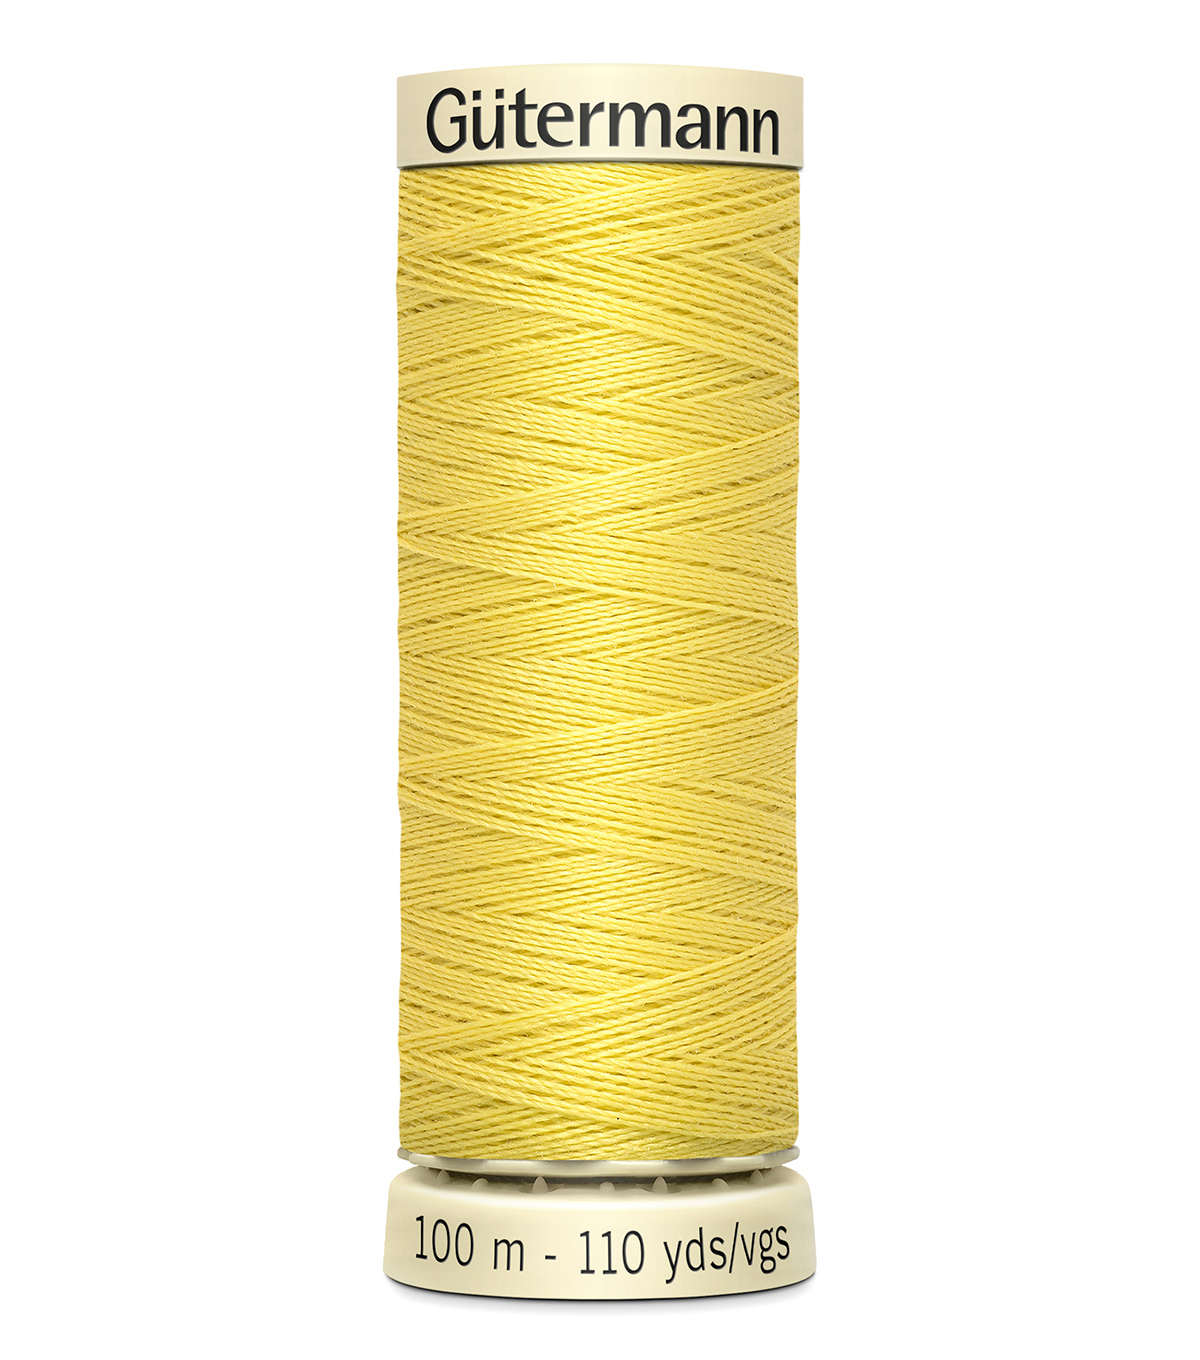 Gutermann Sew All Polyester Thread 110 Yards-Oranges & Yellows , Mimosa